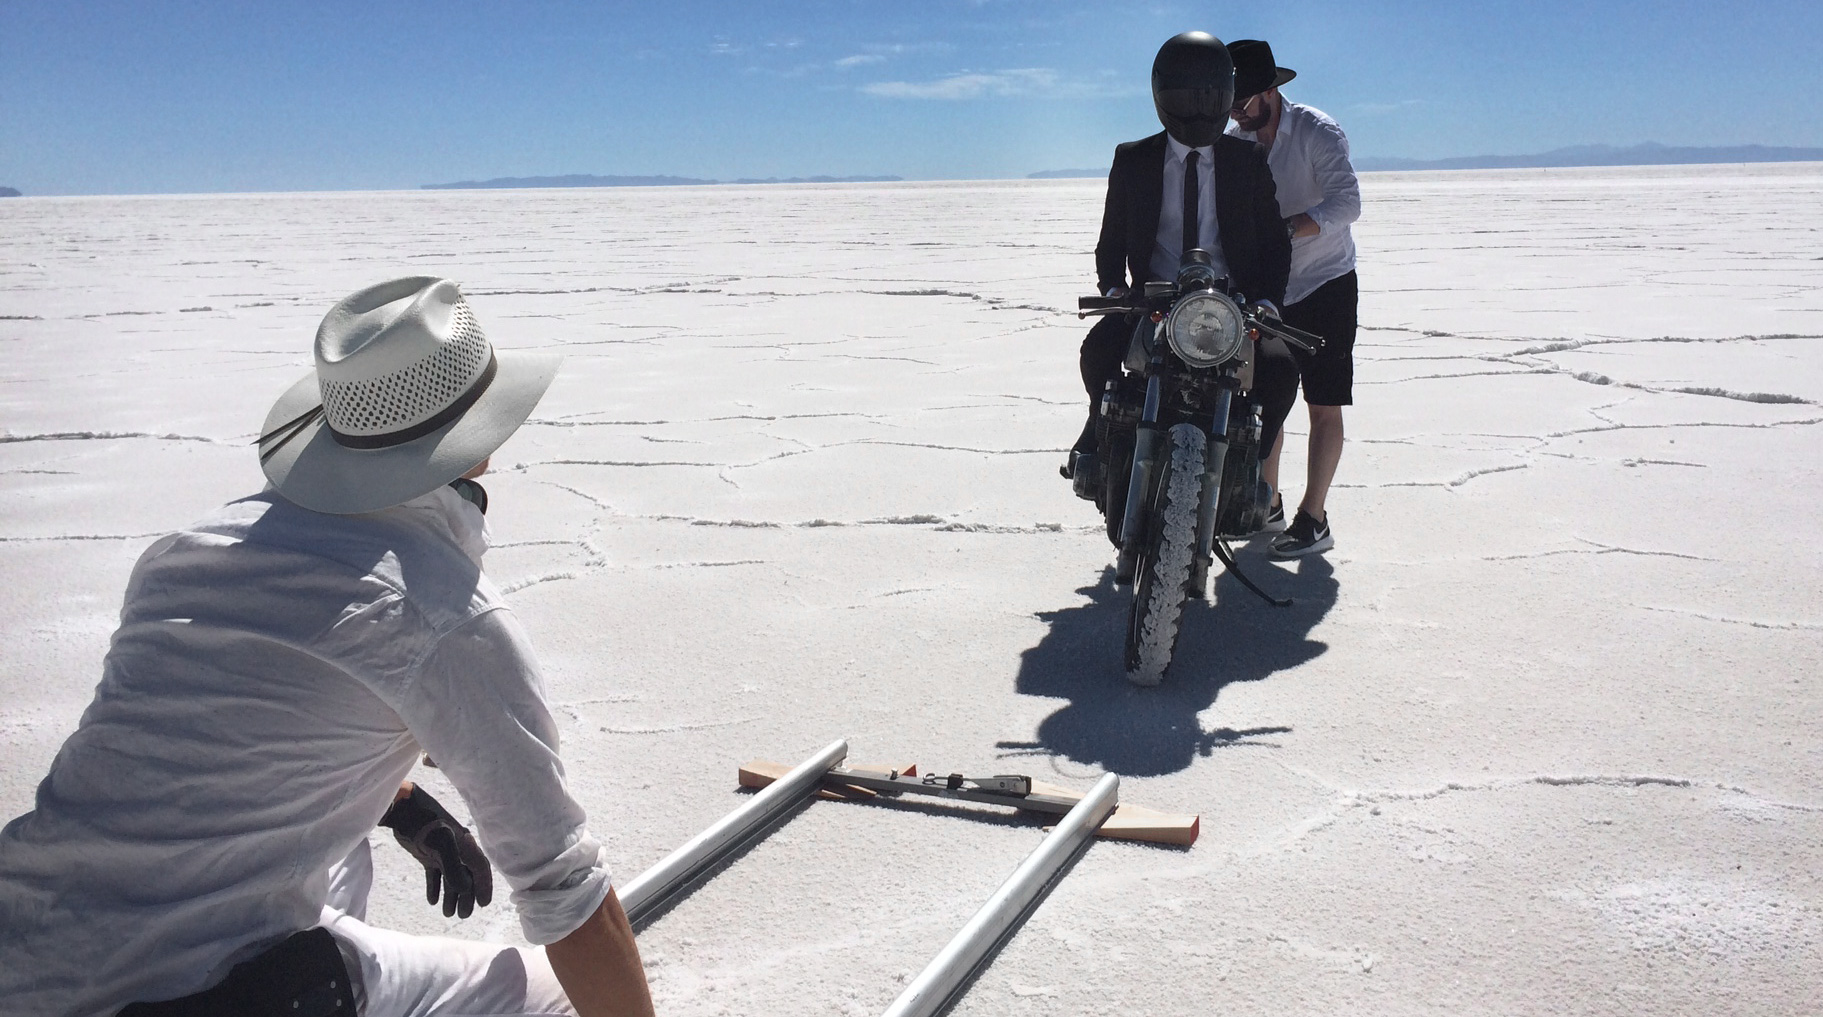 Hallenstein Brothers | Men's Clothing Production Salt Flats Utah 2